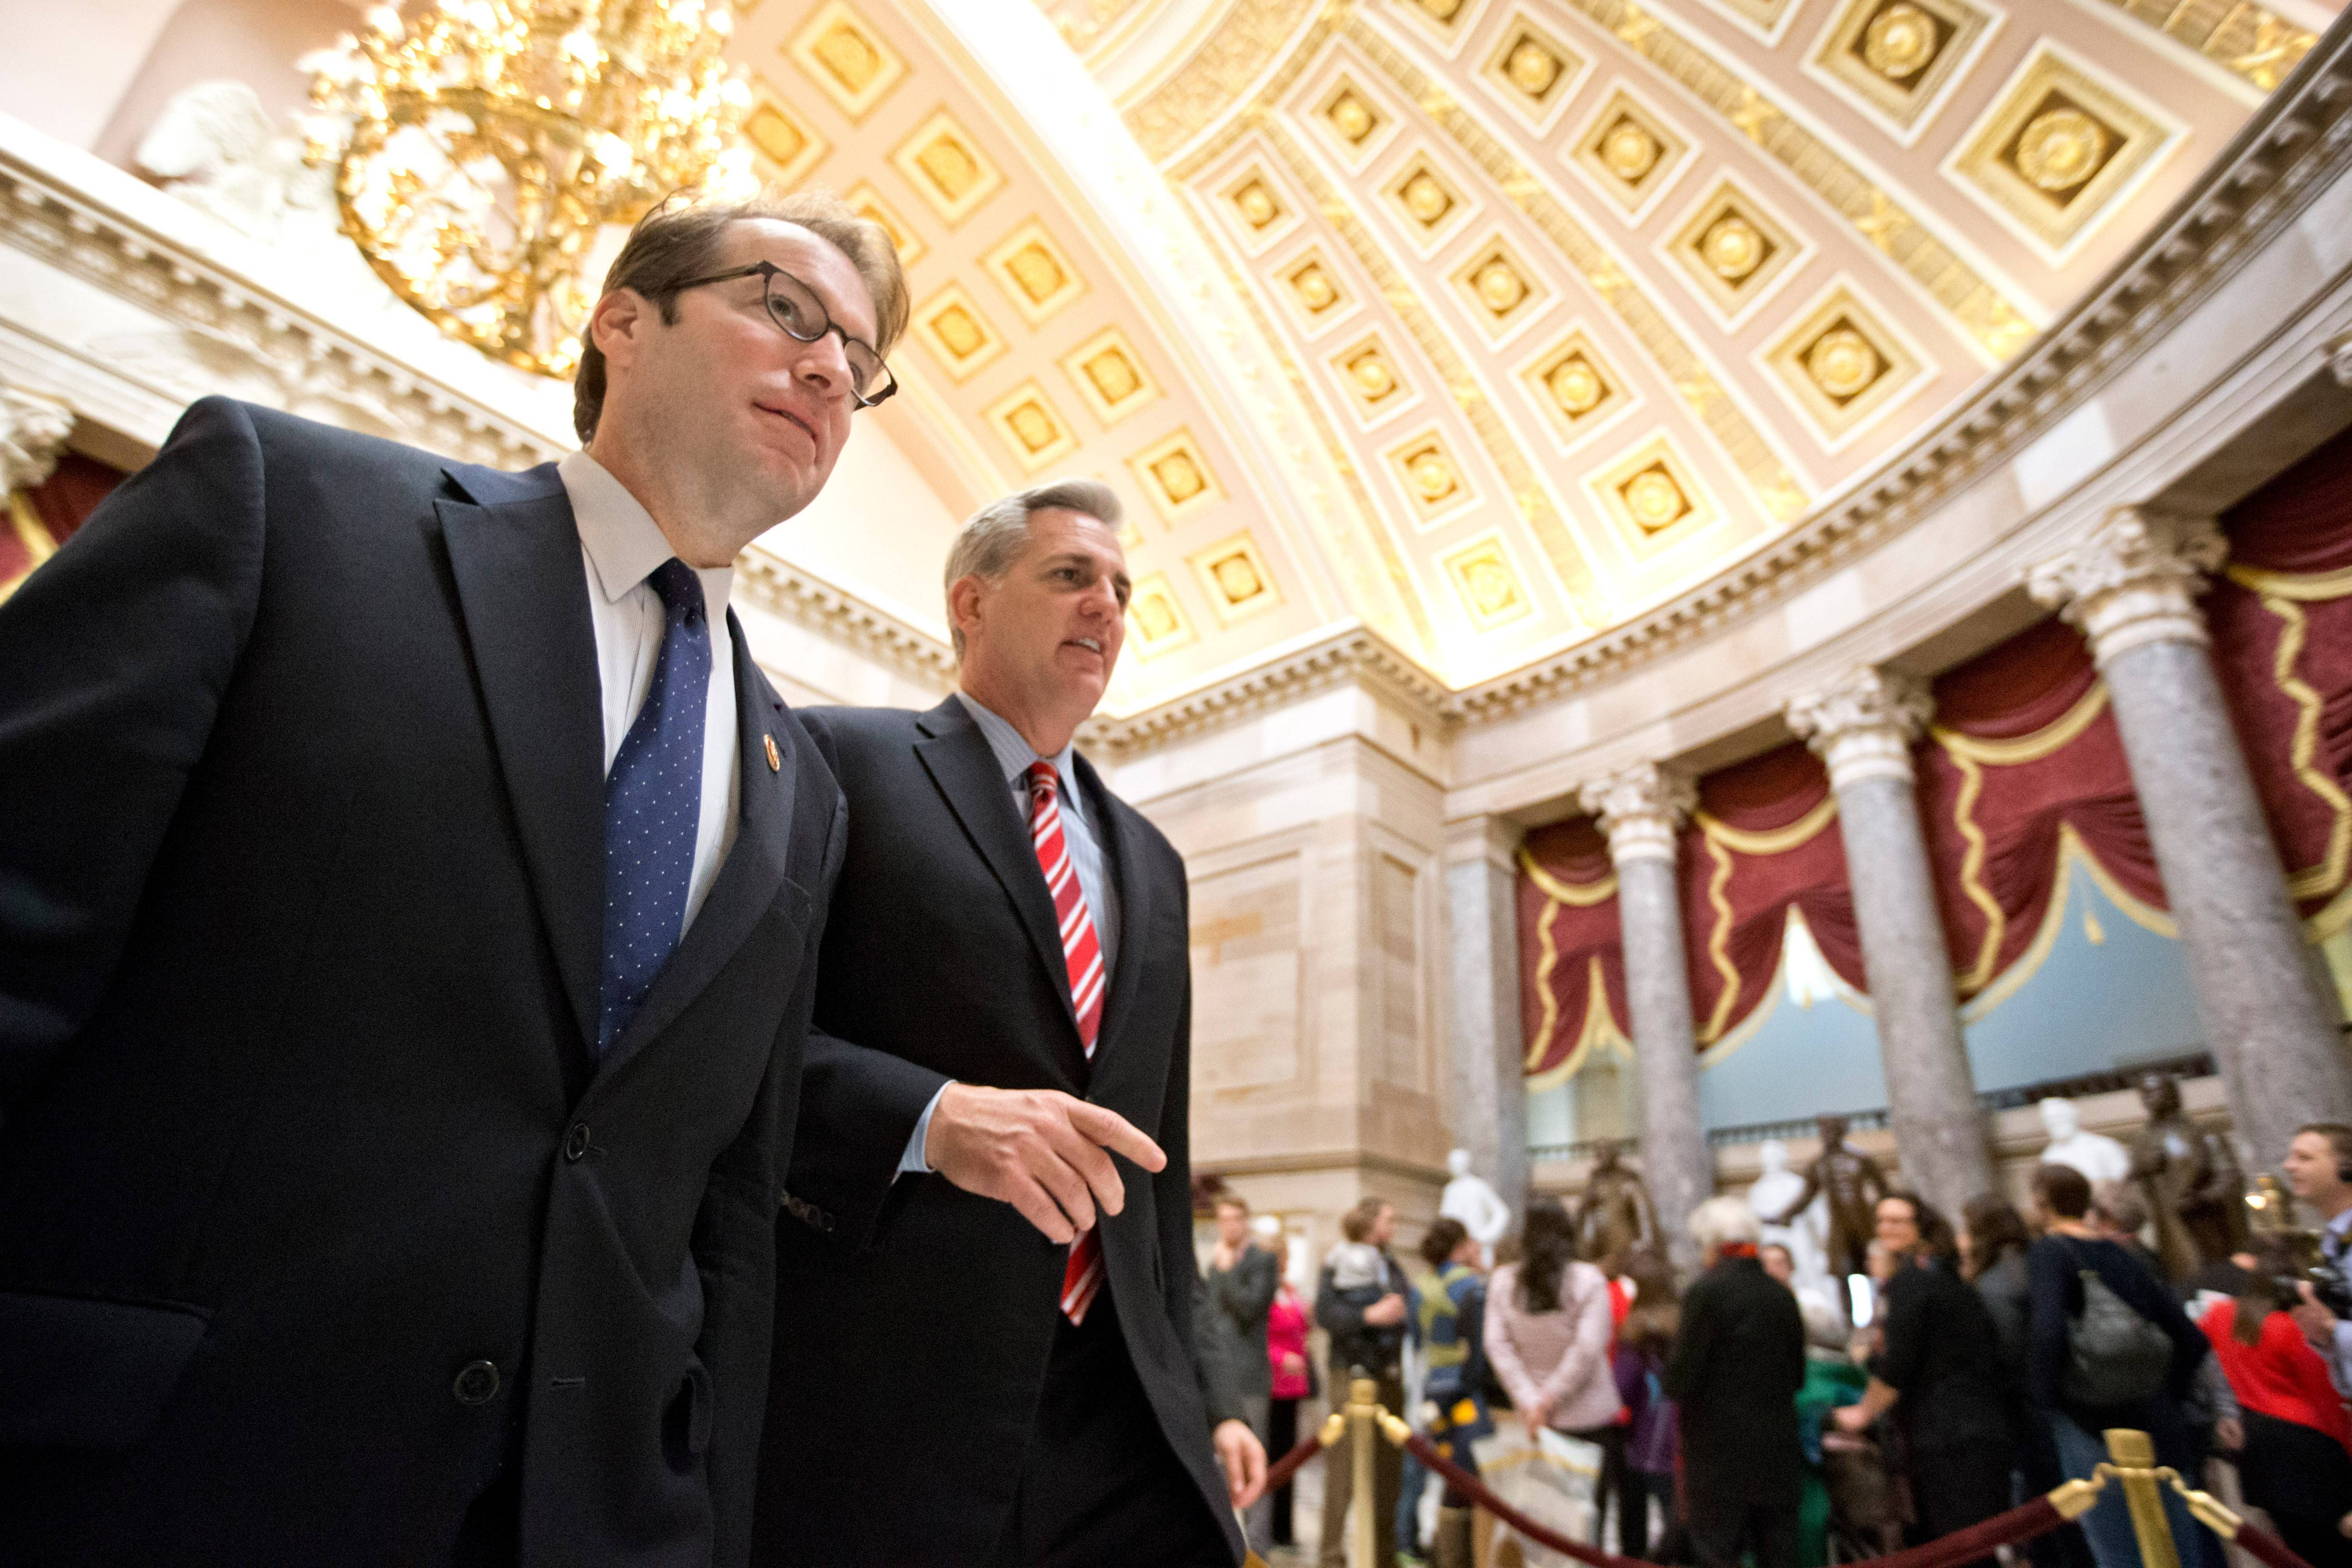 U.S. Rep. Peter Roskam, a Wheaton Republican, lost his bid to replace House Majority Whip Kevin McCarthy of California as the No. 3 Republican in the House.